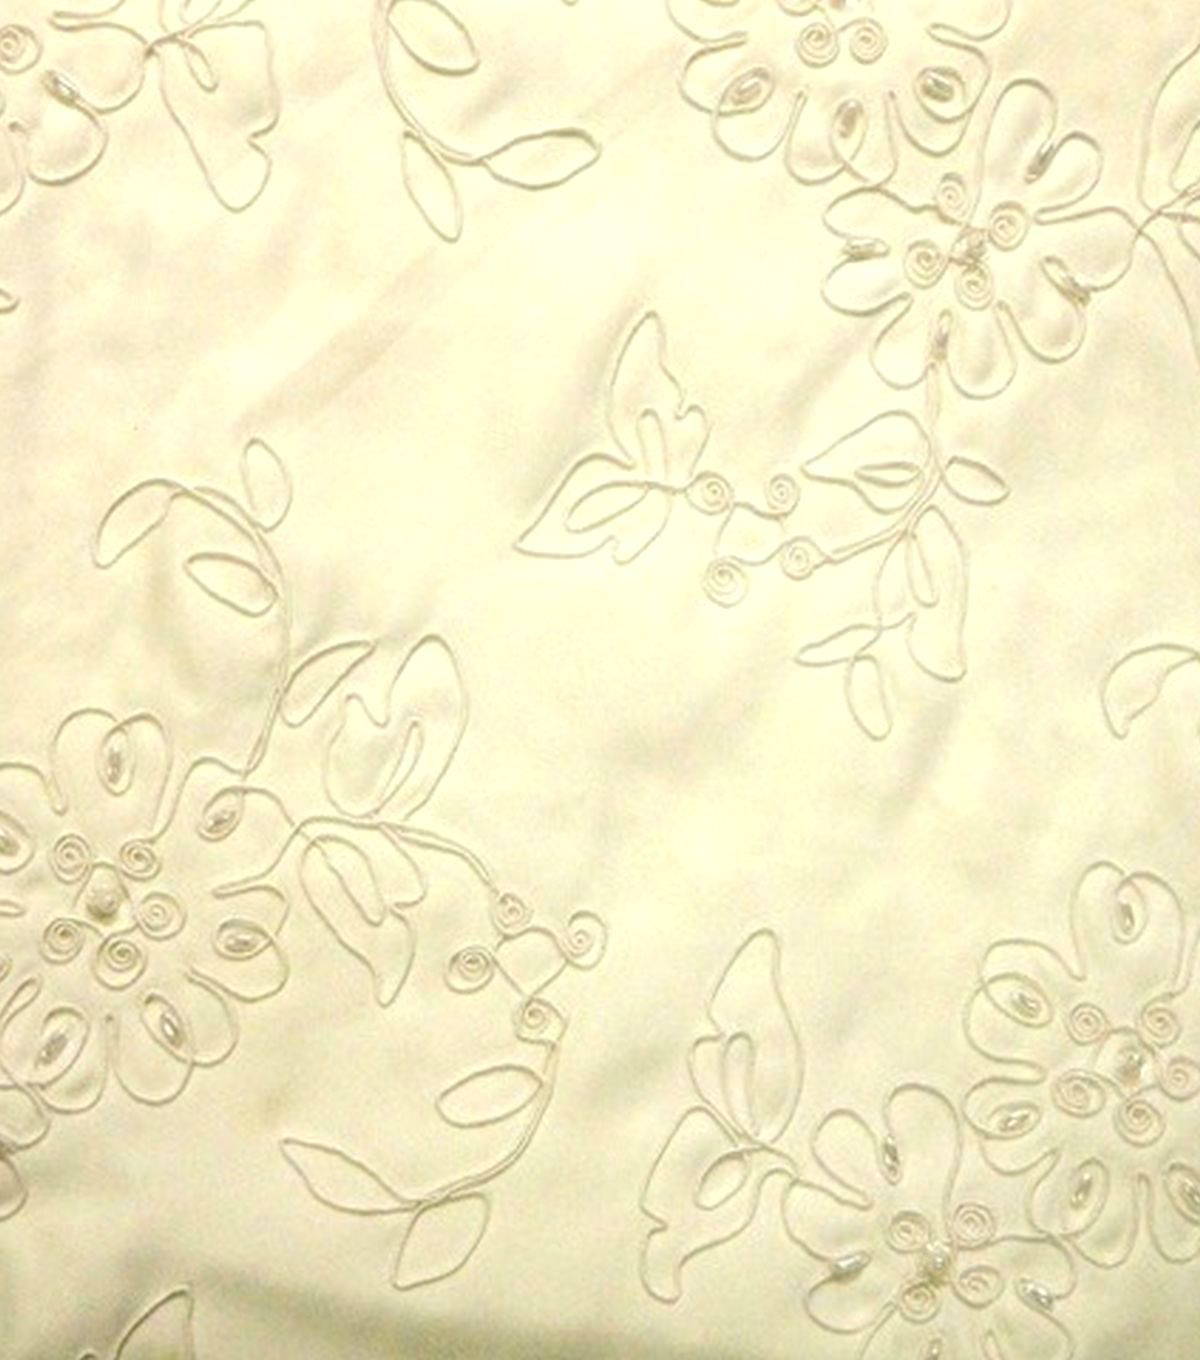 Designer Vault Bridal Fabric - Beaded Corded Satin Ivory